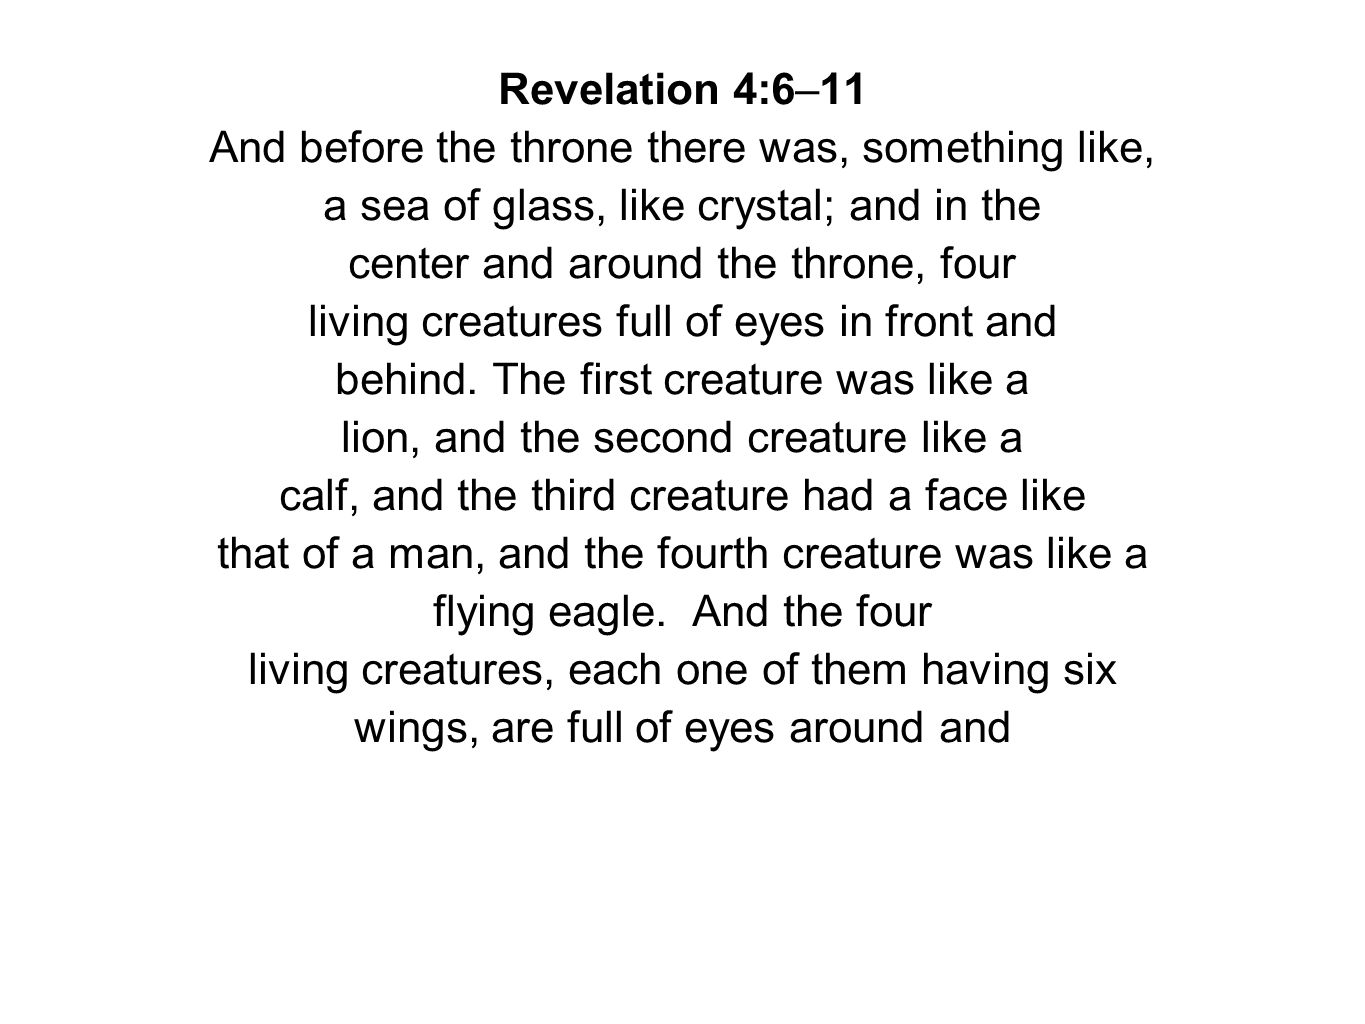 Revelation 4:6–11 And before the throne there was, something like, a sea of glass, like crystal; and in the center and around the throne, four living creatures full of eyes in front and behind.